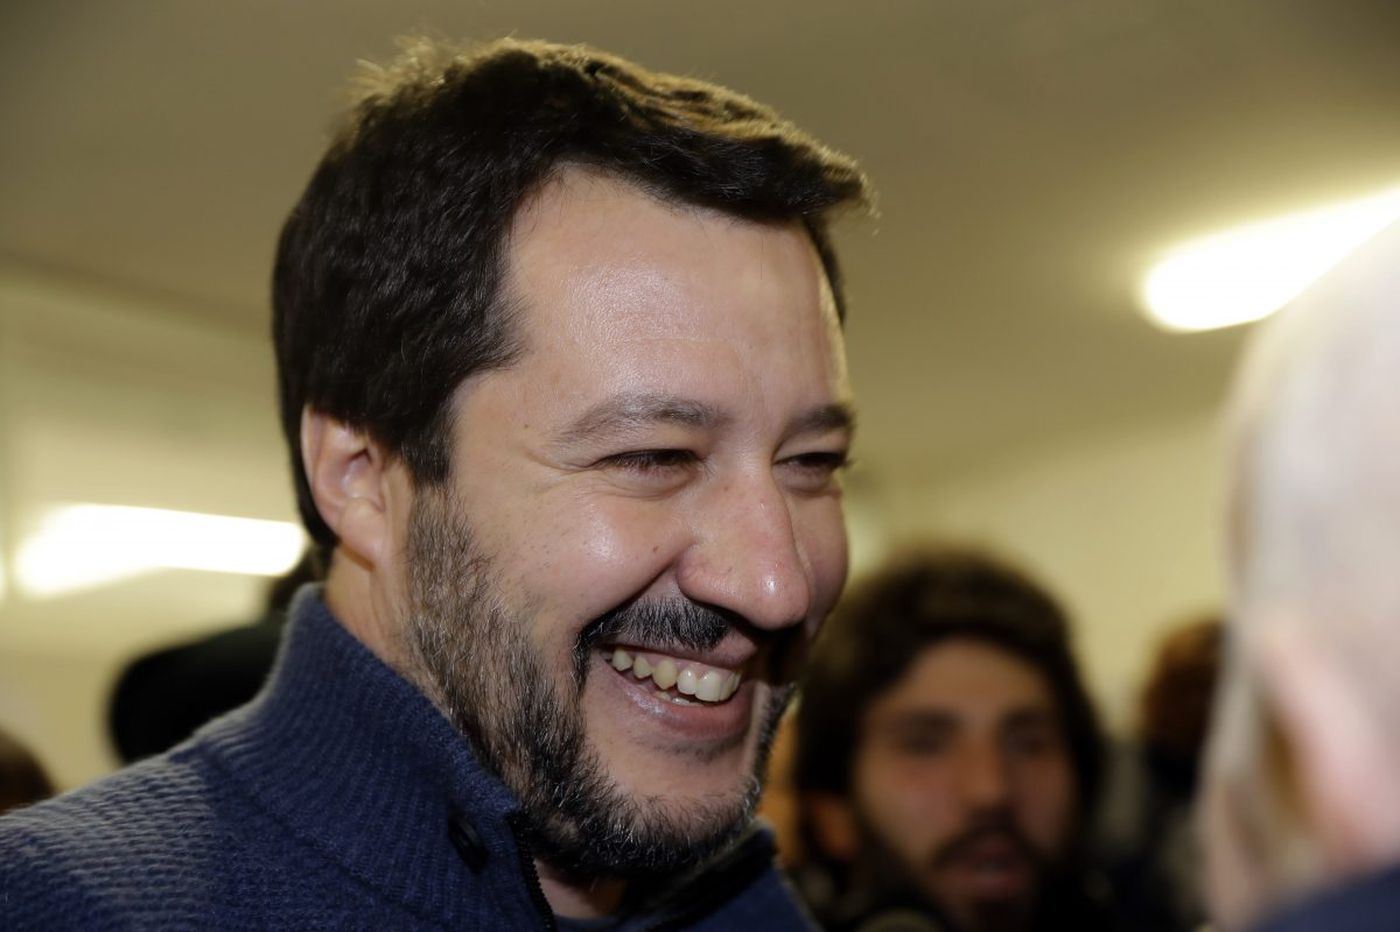 Populist victory in Italy's election has lessons for U.S. | Trudy Rubin